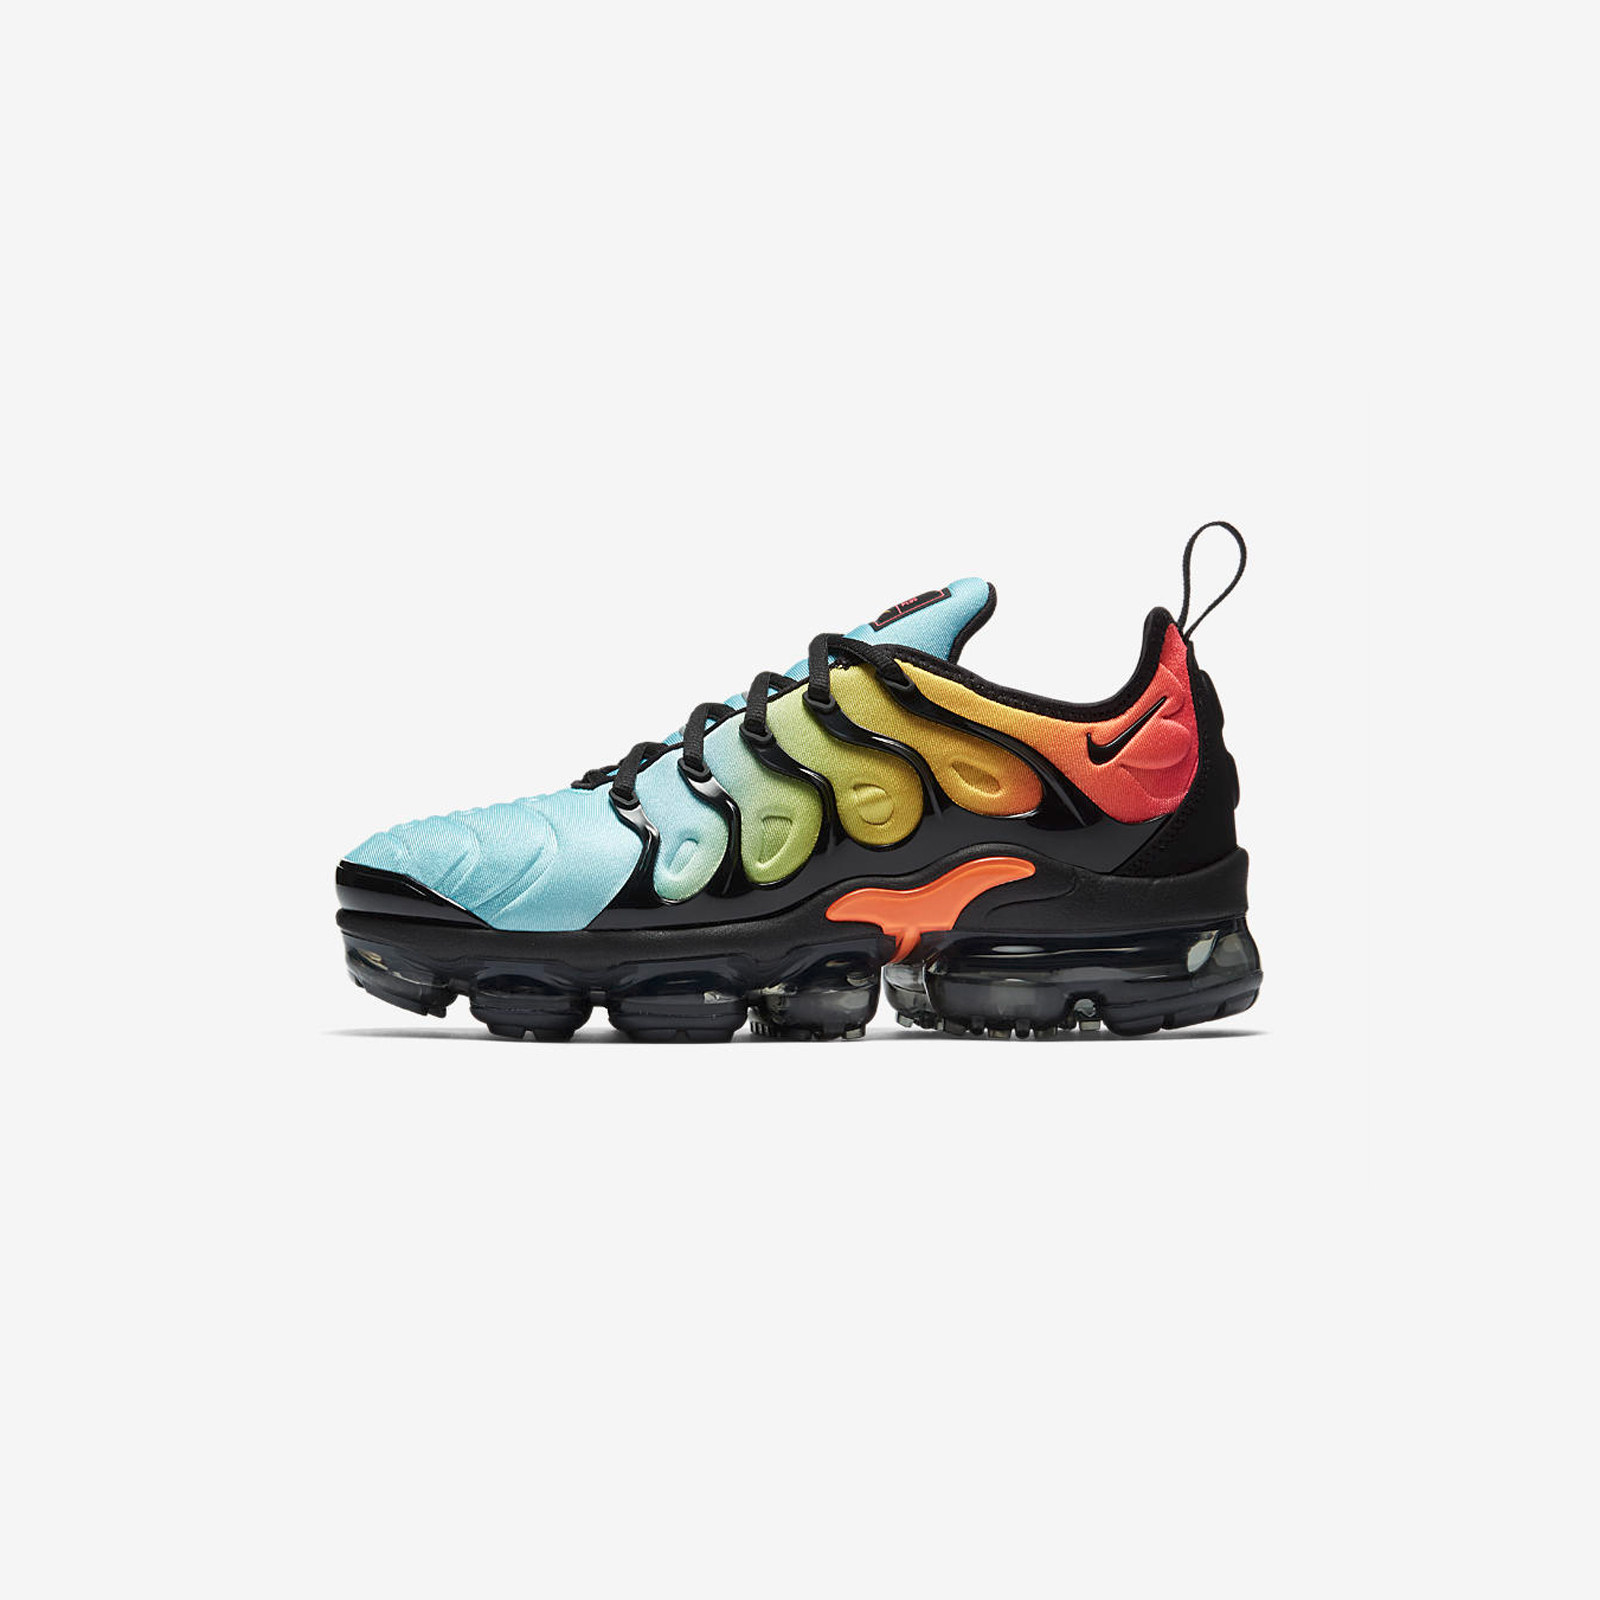 a17a1a3b993c1 Nike Vapormax Plus Size Chart - Photos Chart In The Word